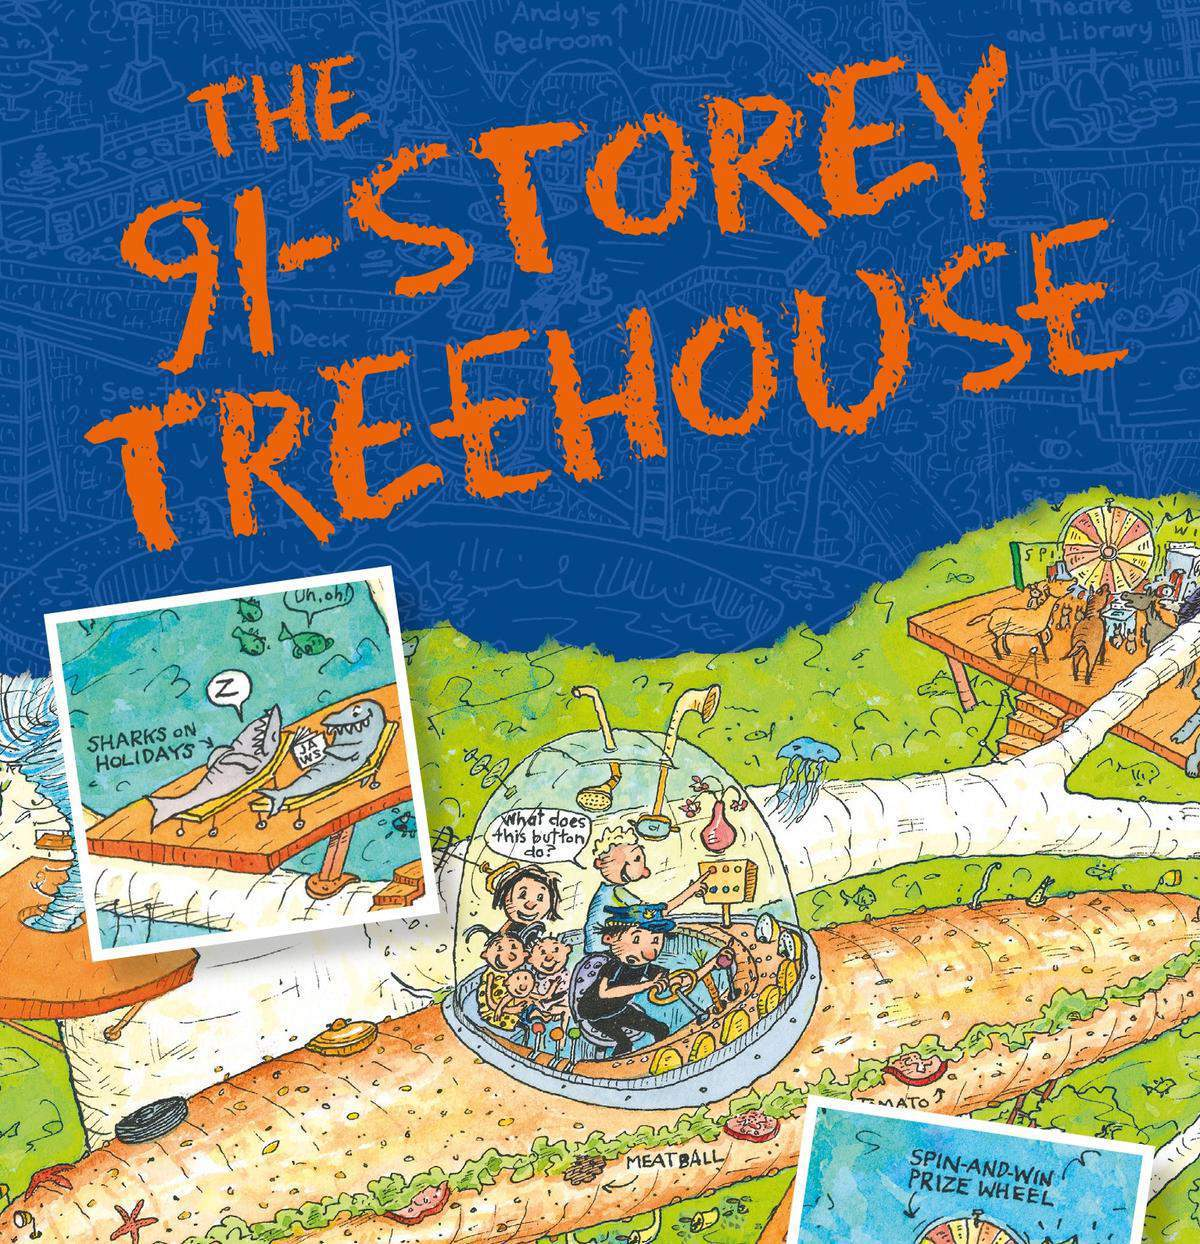 Win the 91-Storey Treehouse and 6 other books in the series worth R1225!